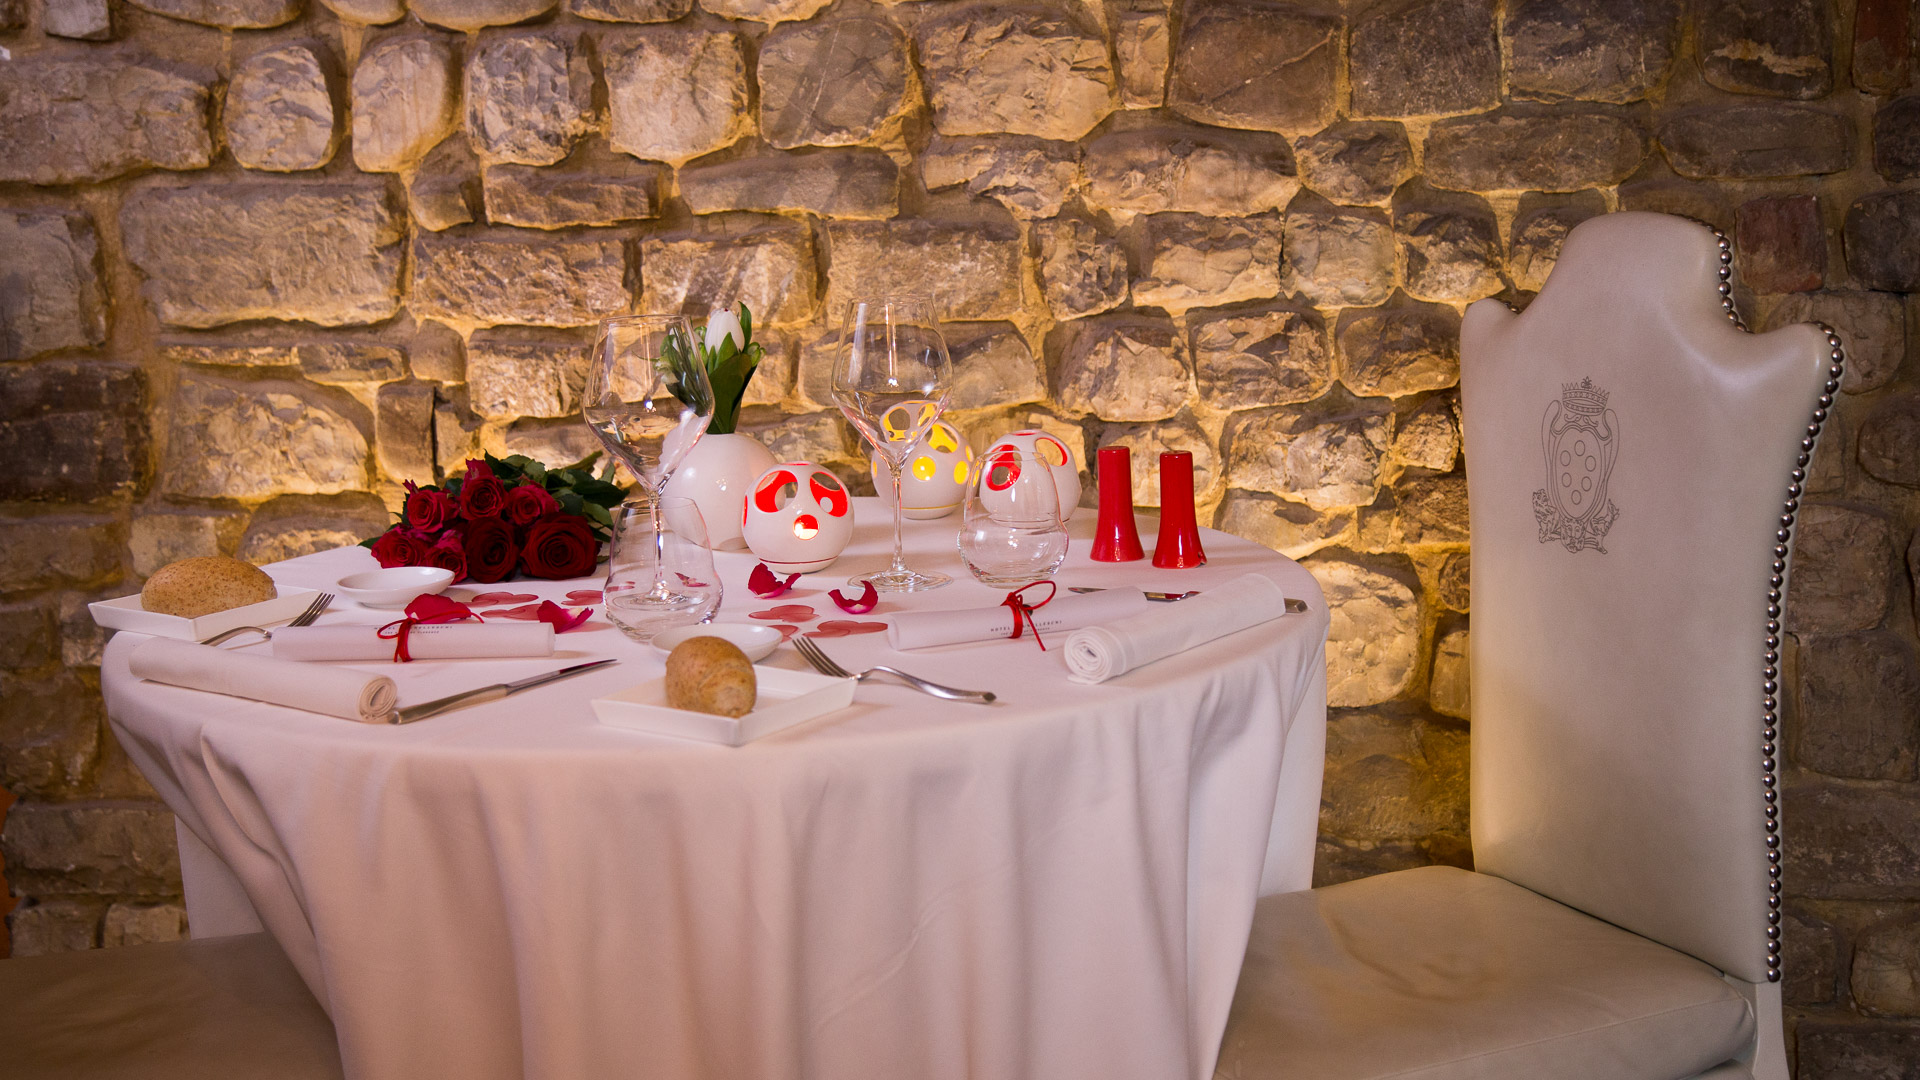 enjoy a romantic valentines day dinner in florence on wednesday february 14th 2018 discover the magic candlelight atmosphere of the hotel brunelleschis